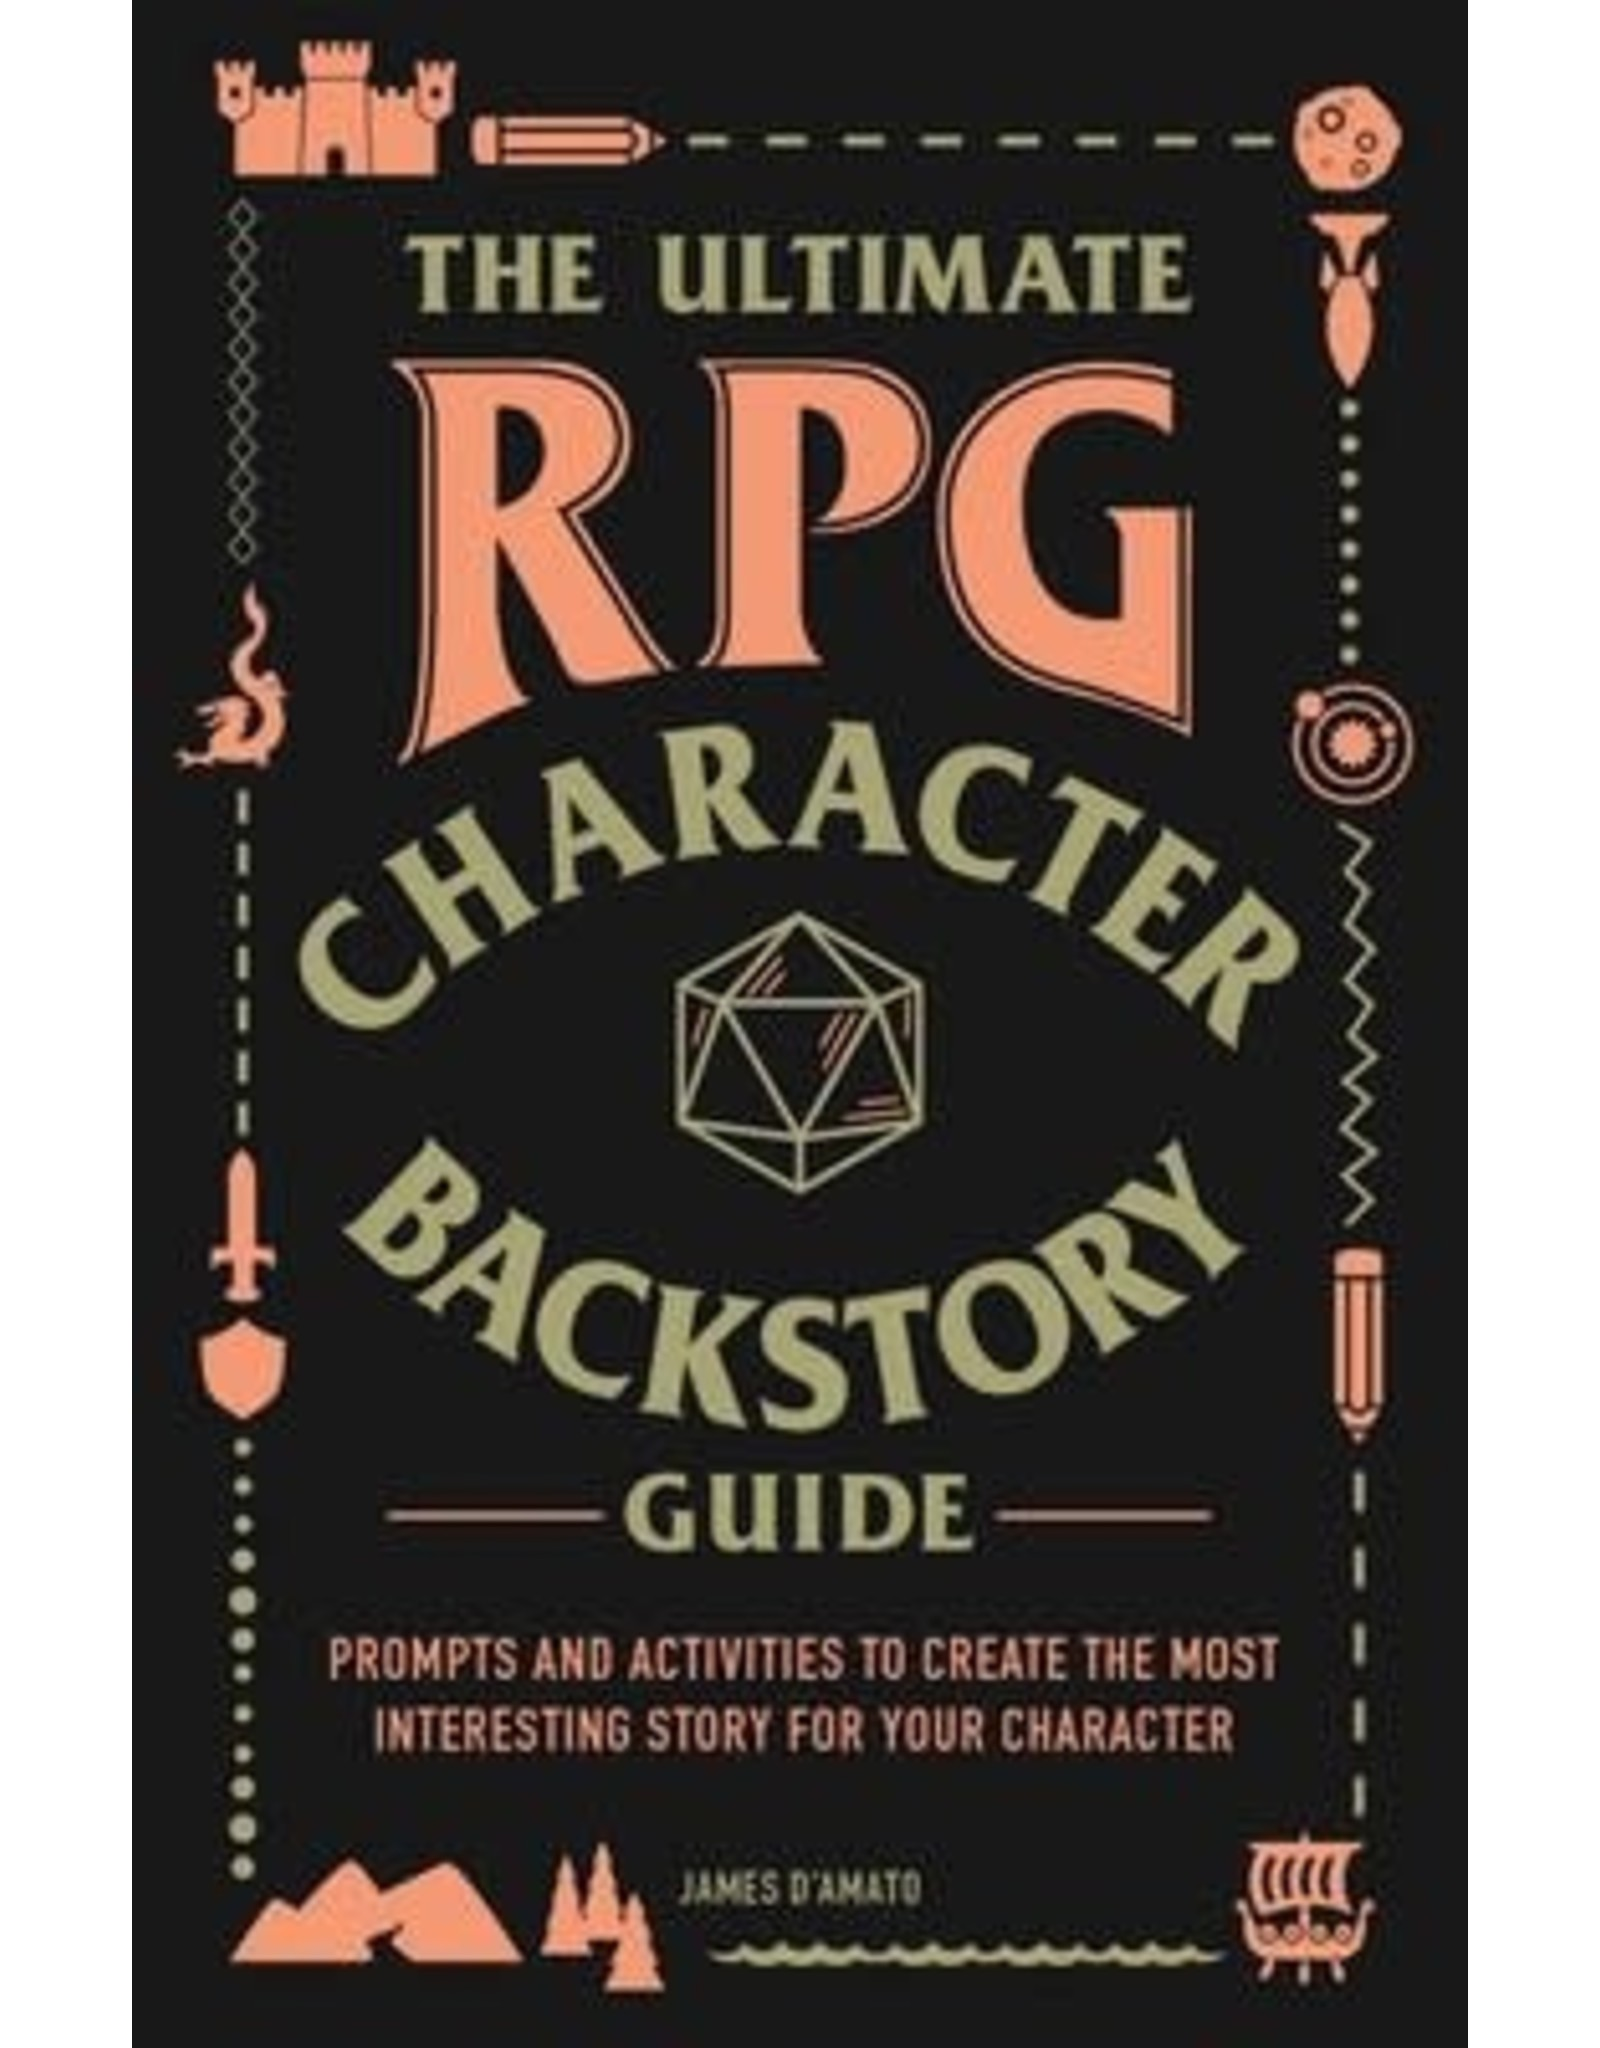 Simon & Schuster The Ultimate RPG Character Backstory Guide